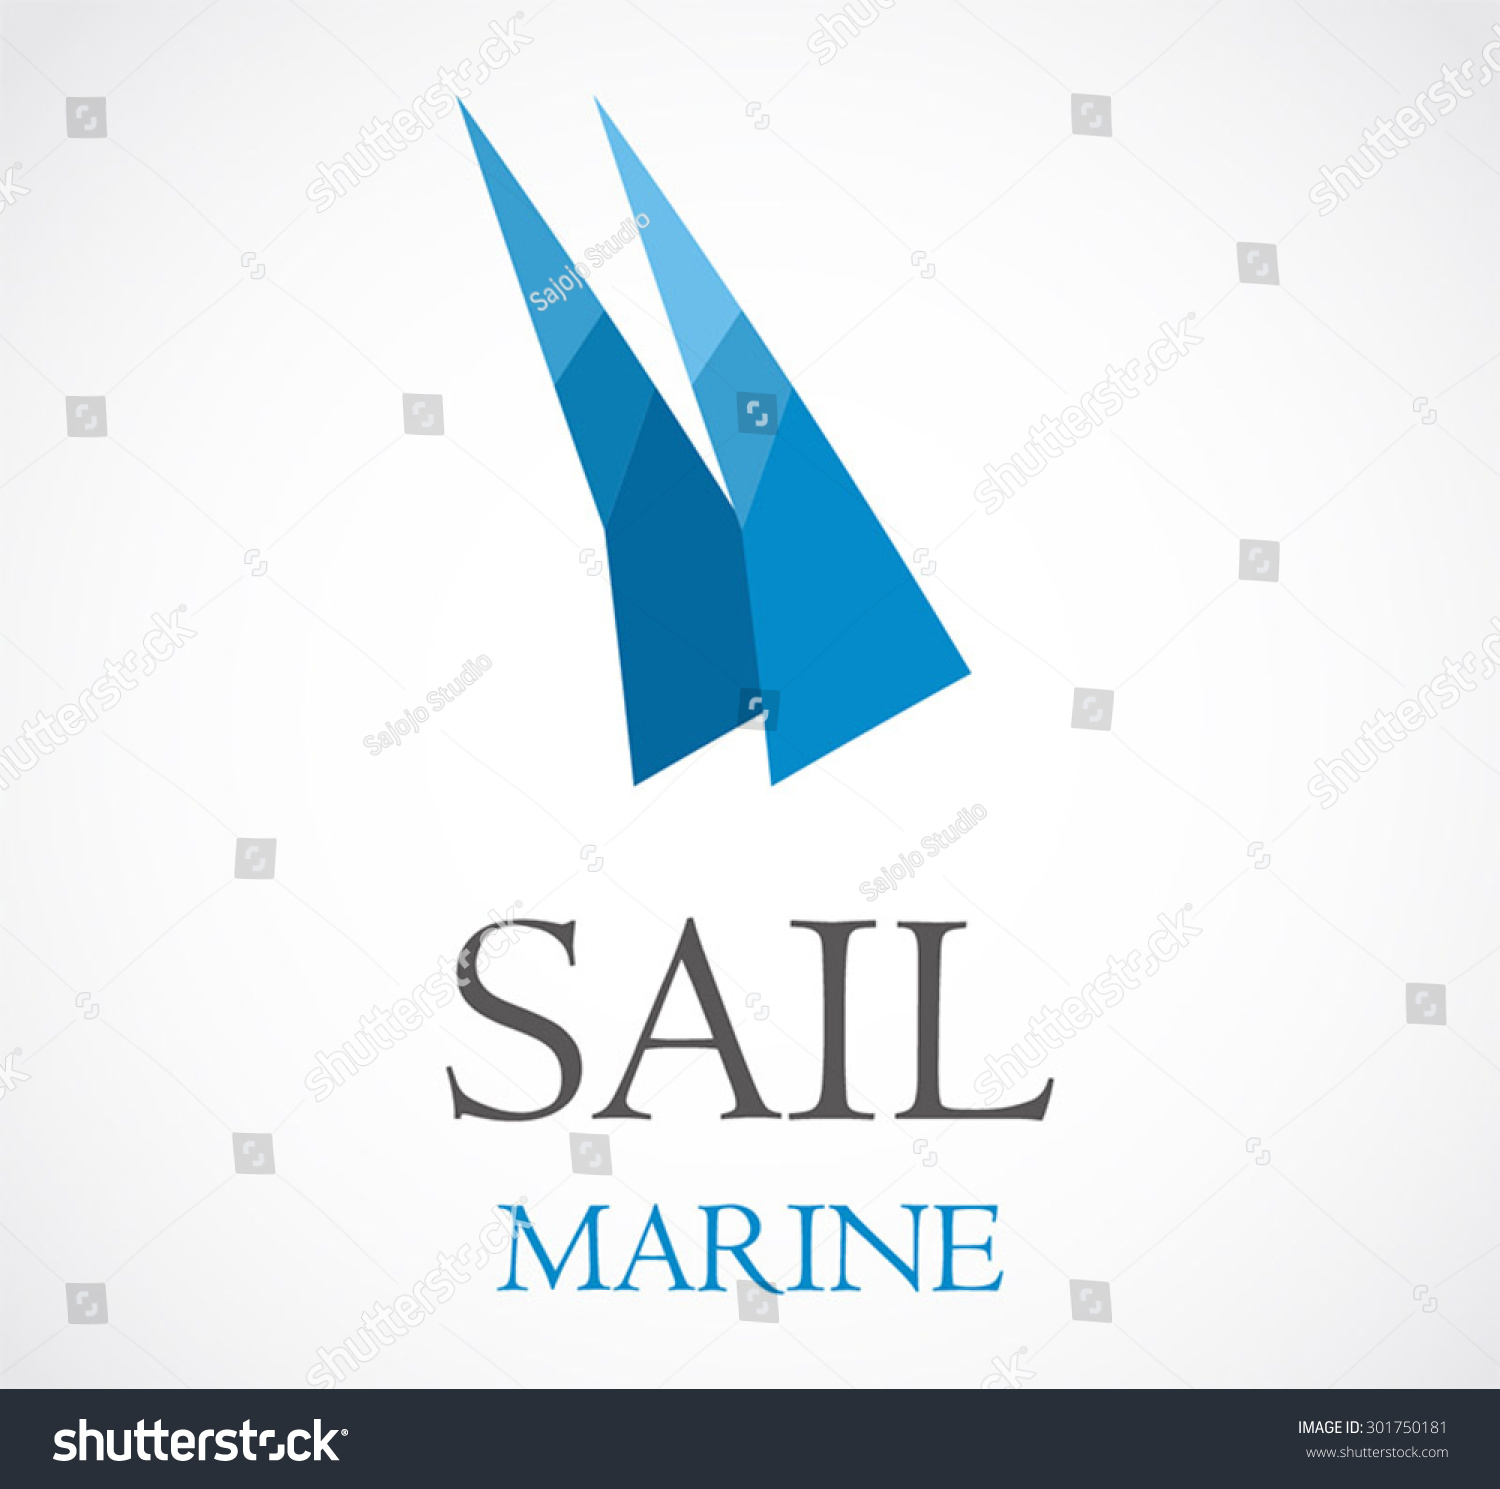 Sail marine blue ocean abstract vector stock vector 301750181 sail marine blue ocean abstract vector logo design template sea business icon ship company or corporate pronofoot35fo Choice Image